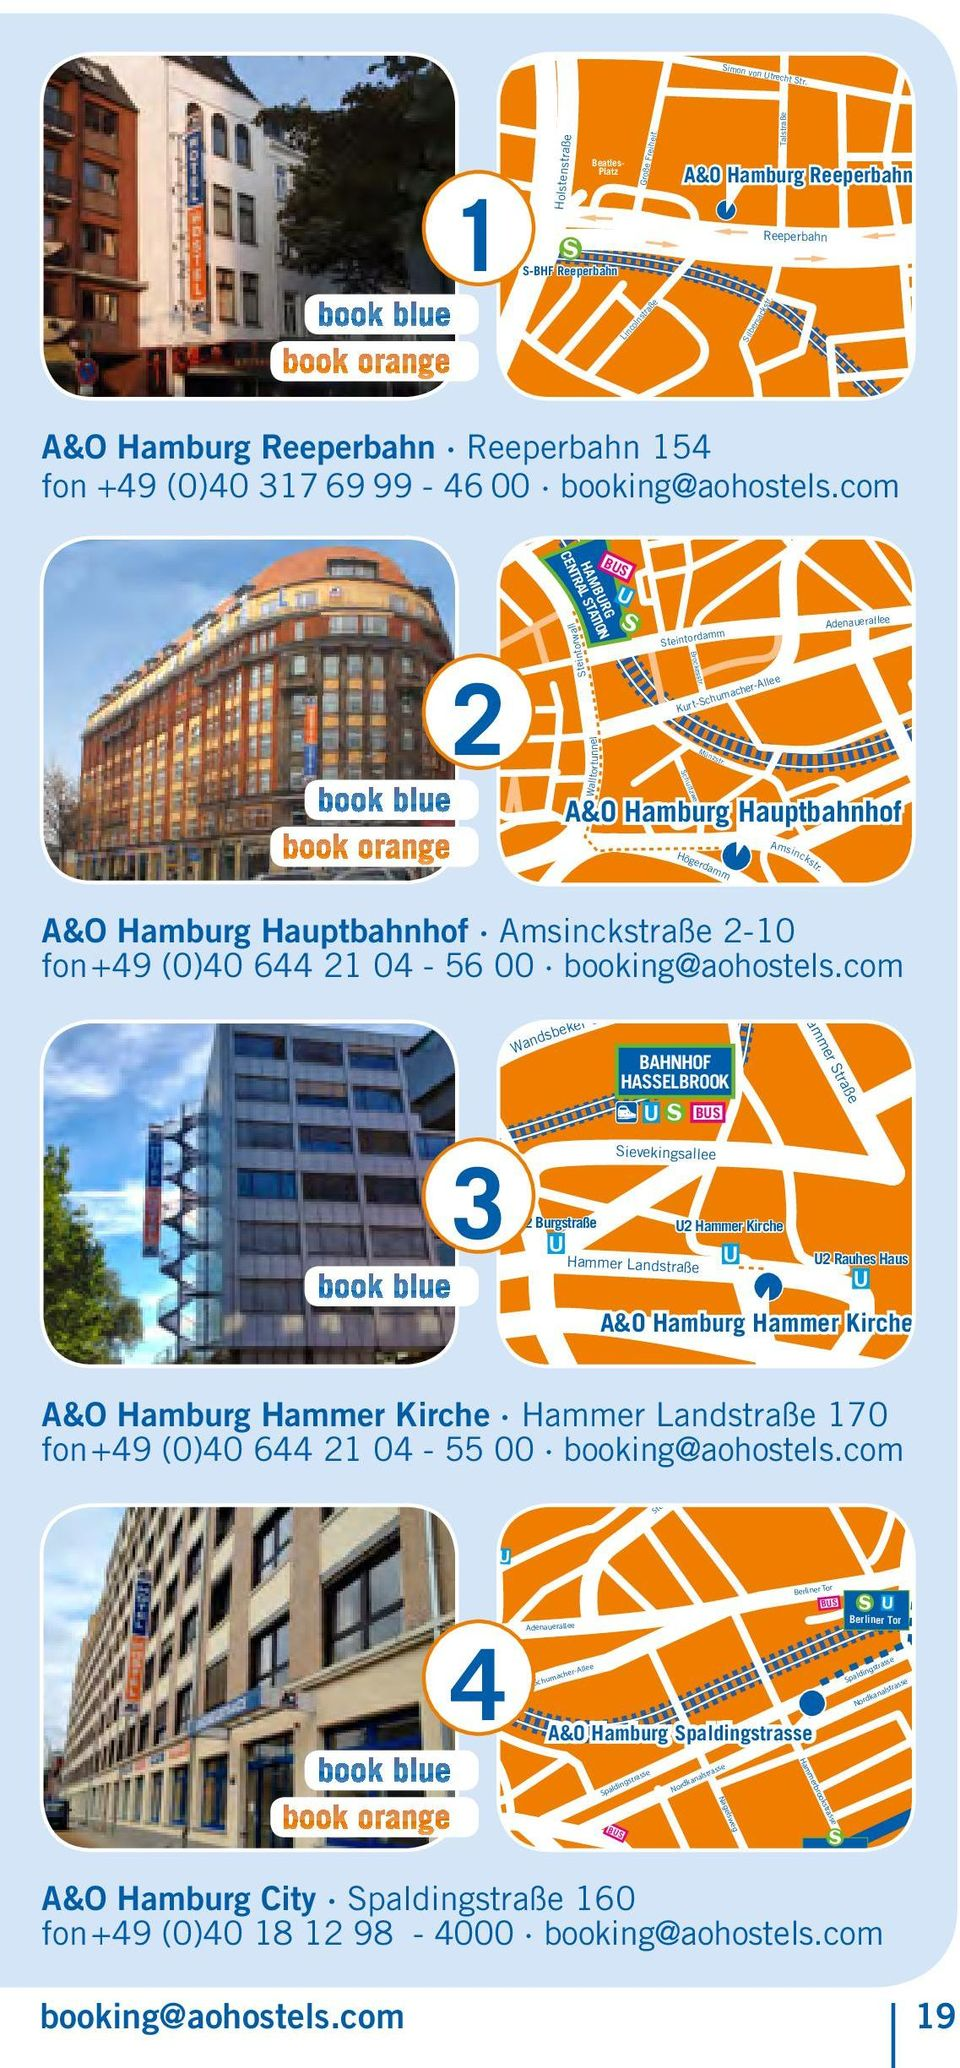 com HAMBURG CENTRAL STATION BUS 2 A&O Hamburg Hammer Kirche Walltortunnel Steintorwall U Steintordamm Brockesstr. Kurt-Schumacher-Allee Strohhase Schultzweg Münzstr.